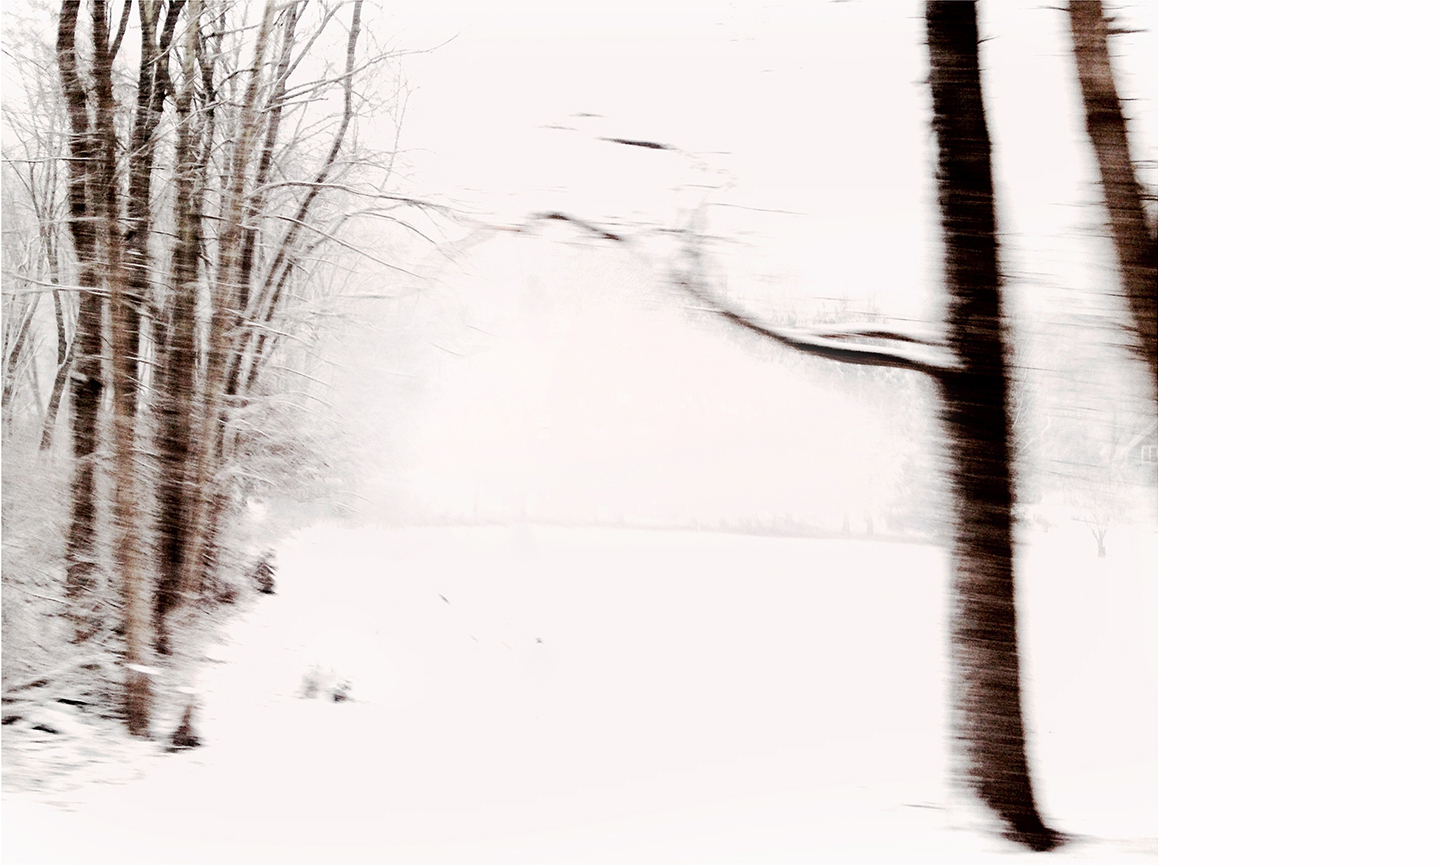 """Winterscape #12   Archival Pigment on Hahnemuhle German Etching Paper Rising Museum Acid Free Mounting Board Acrylite Non -glare UV Filtering Plexi Glass Custom White Oak Frame 28 x 34"""" including a 6"""" white mat border   $950"""